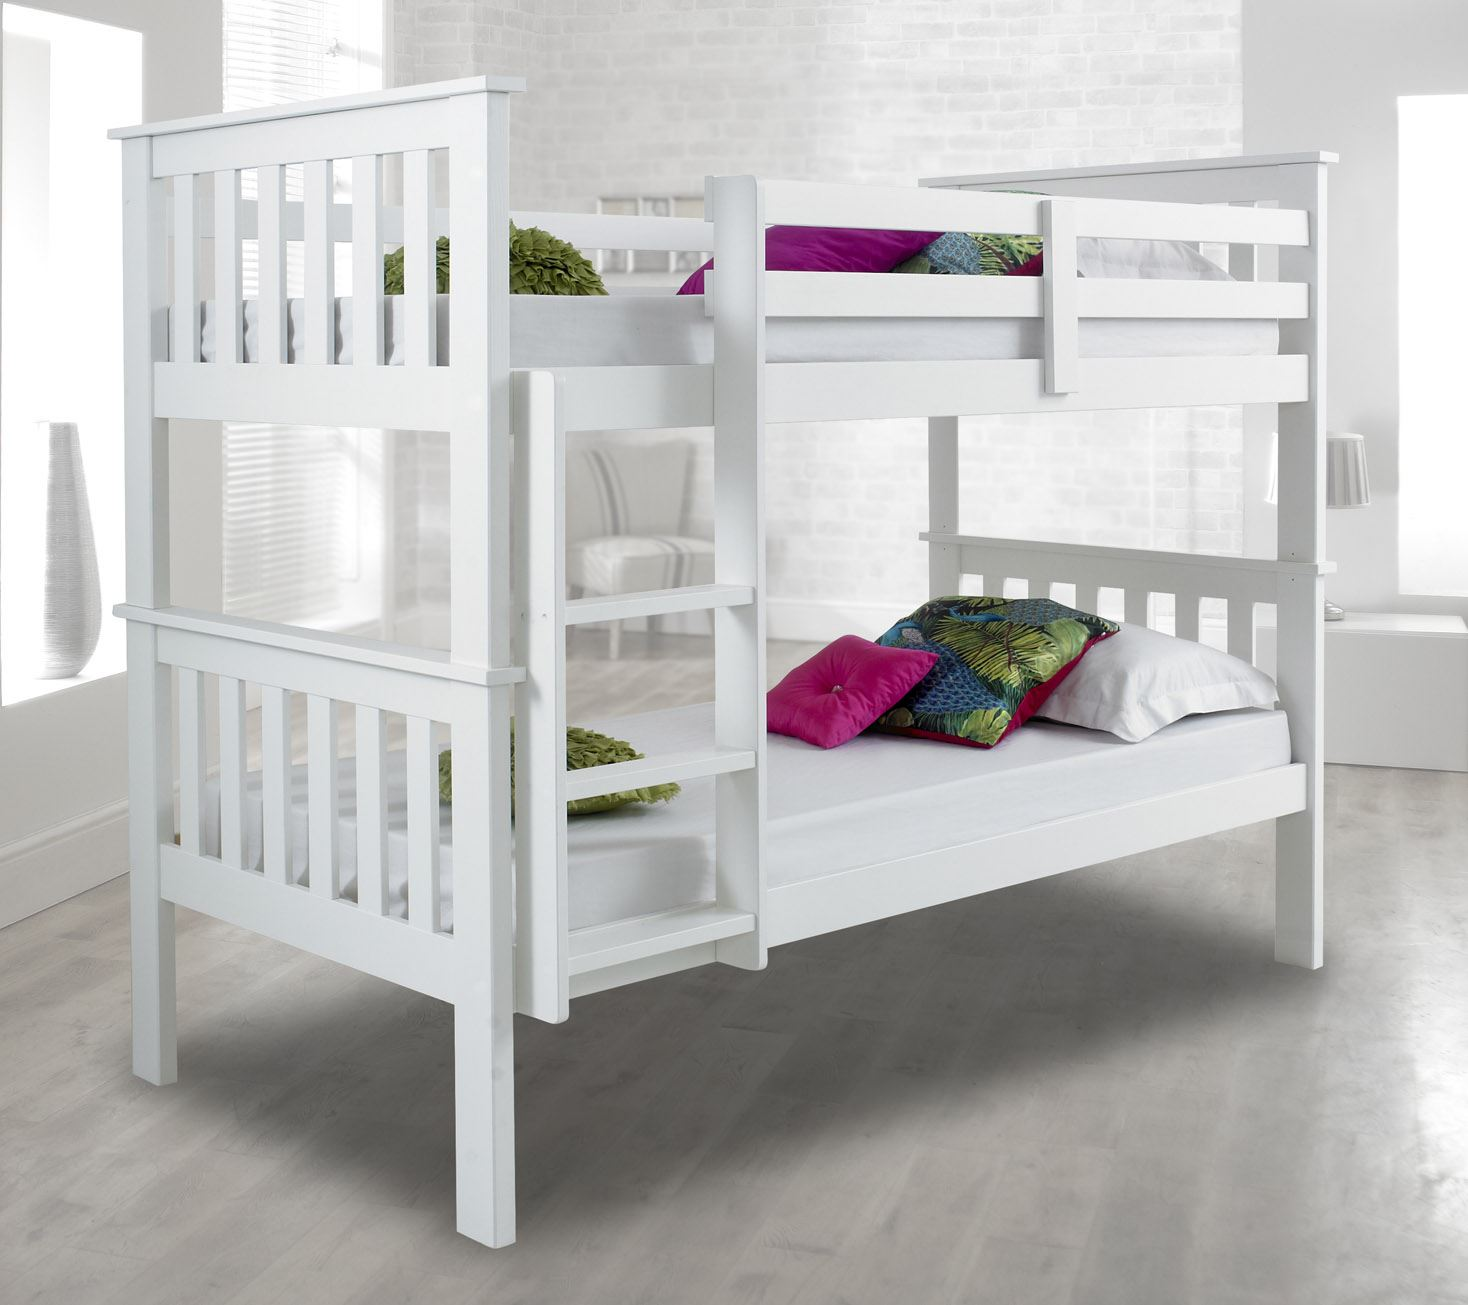 atlantis wood bunk bed 3ft single with 4 mattress and 2. Black Bedroom Furniture Sets. Home Design Ideas